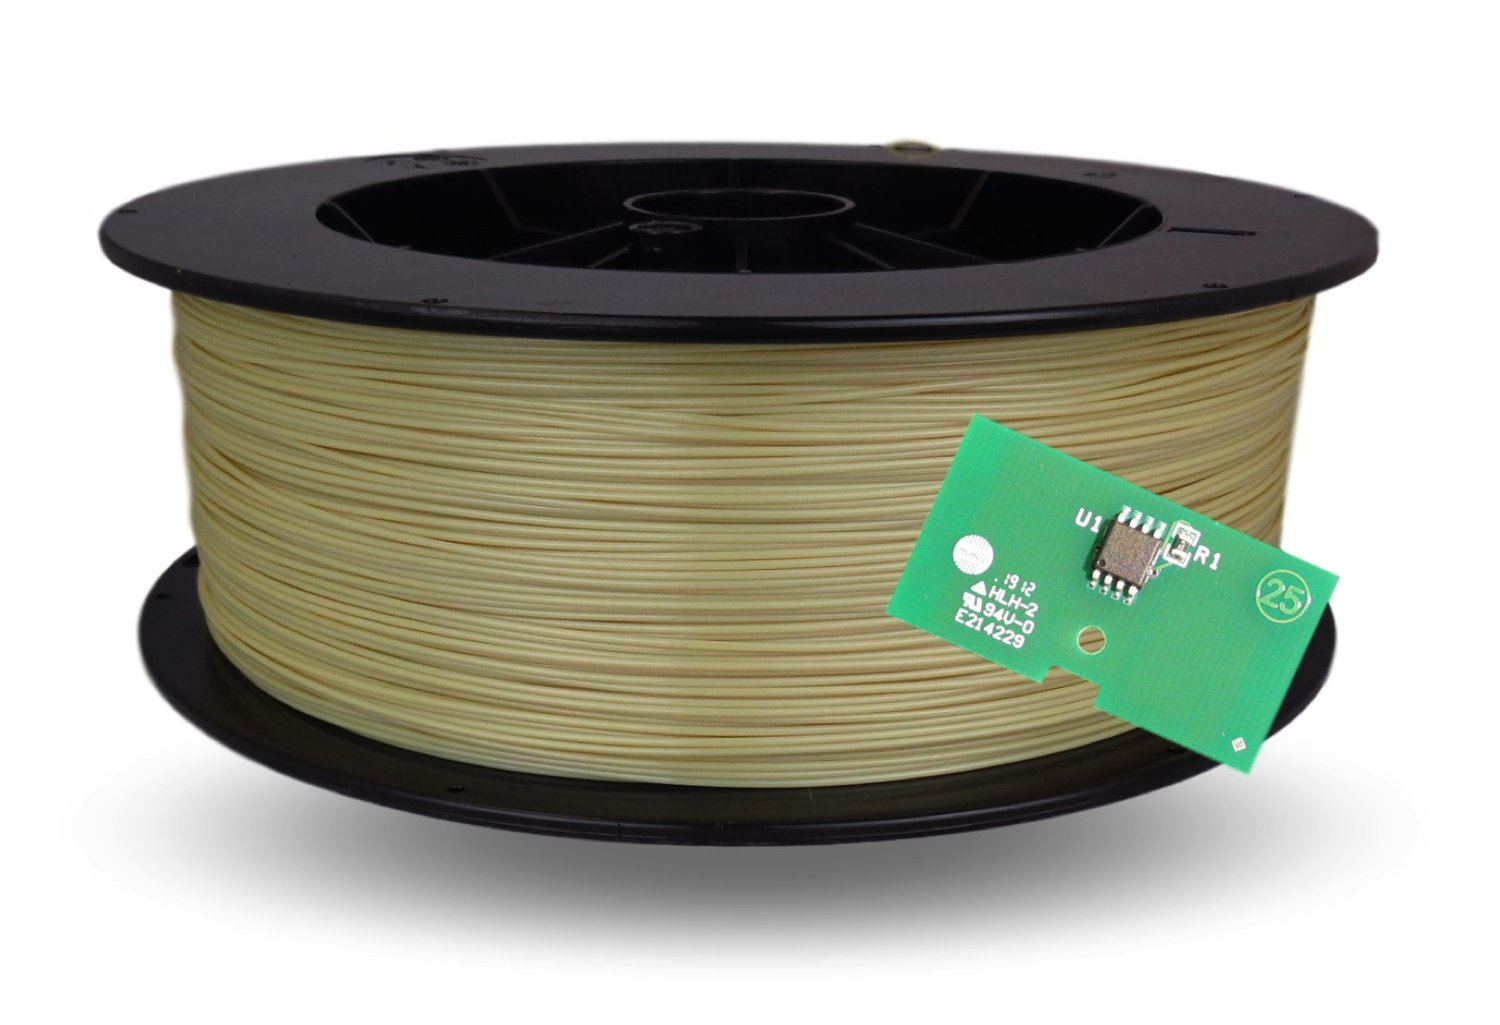 Stratasys Refill for Fortus Ultem 9085 PEI 3D Filament 92in3 includes EEPROM